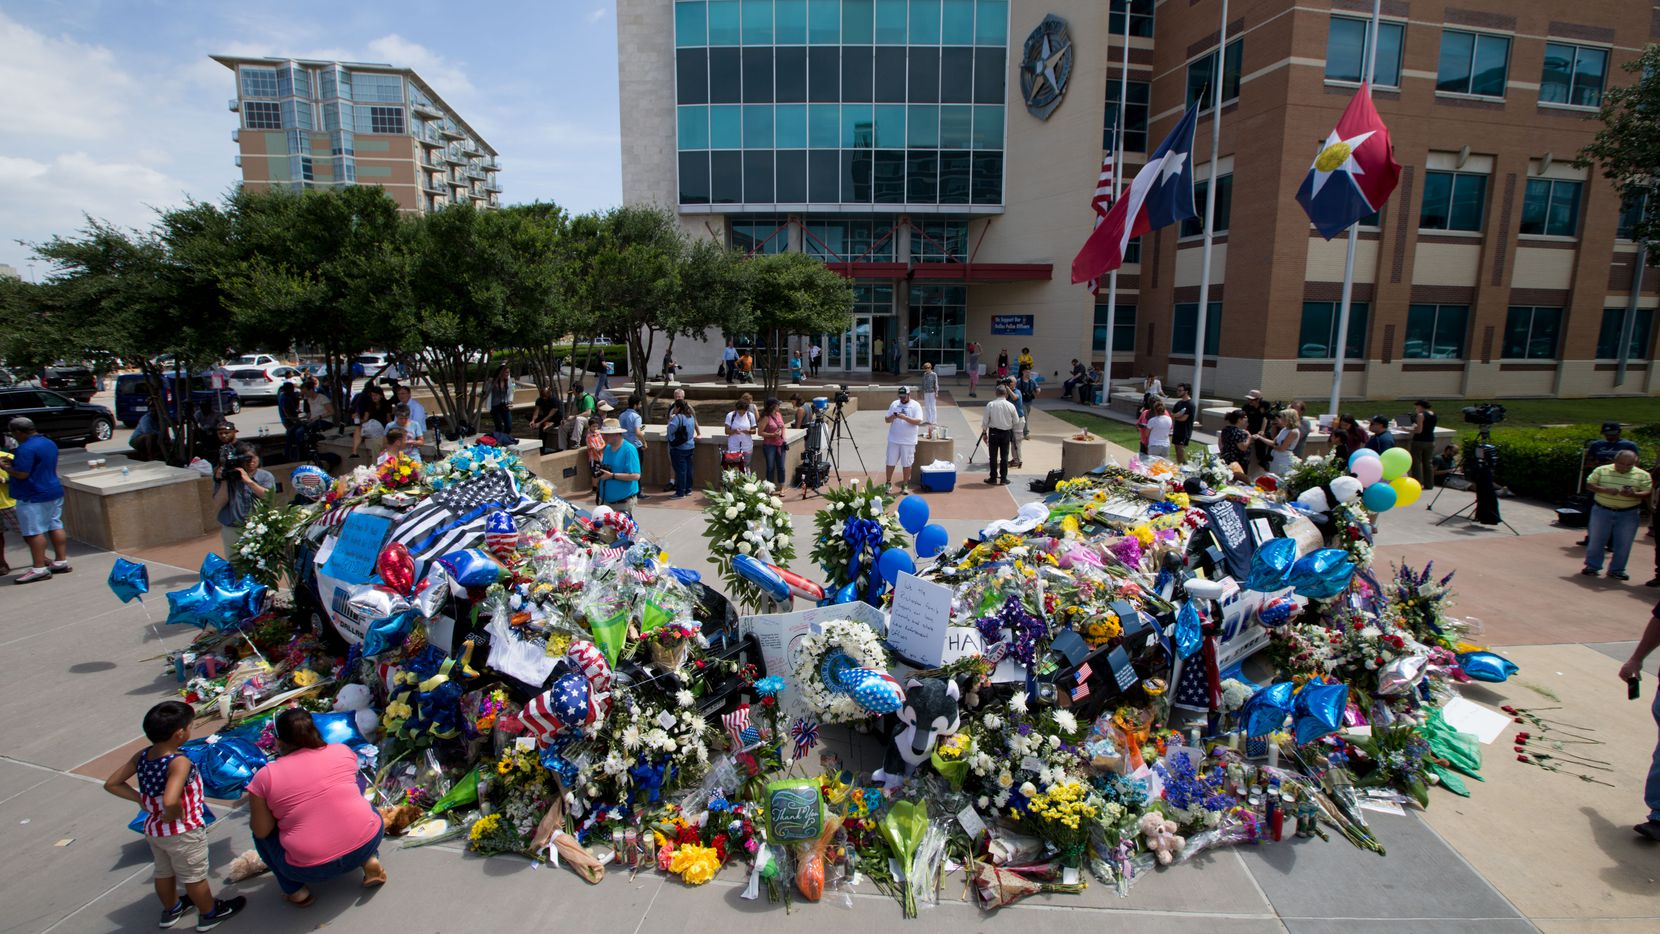 By July 9, two Dallas police cars were buried so deep in flowers and mementos that they could no longer be seen, as a memorial for the injured and slain officers from the July 7 shooting slowly grew bigger in front of Dallas police headquarters.